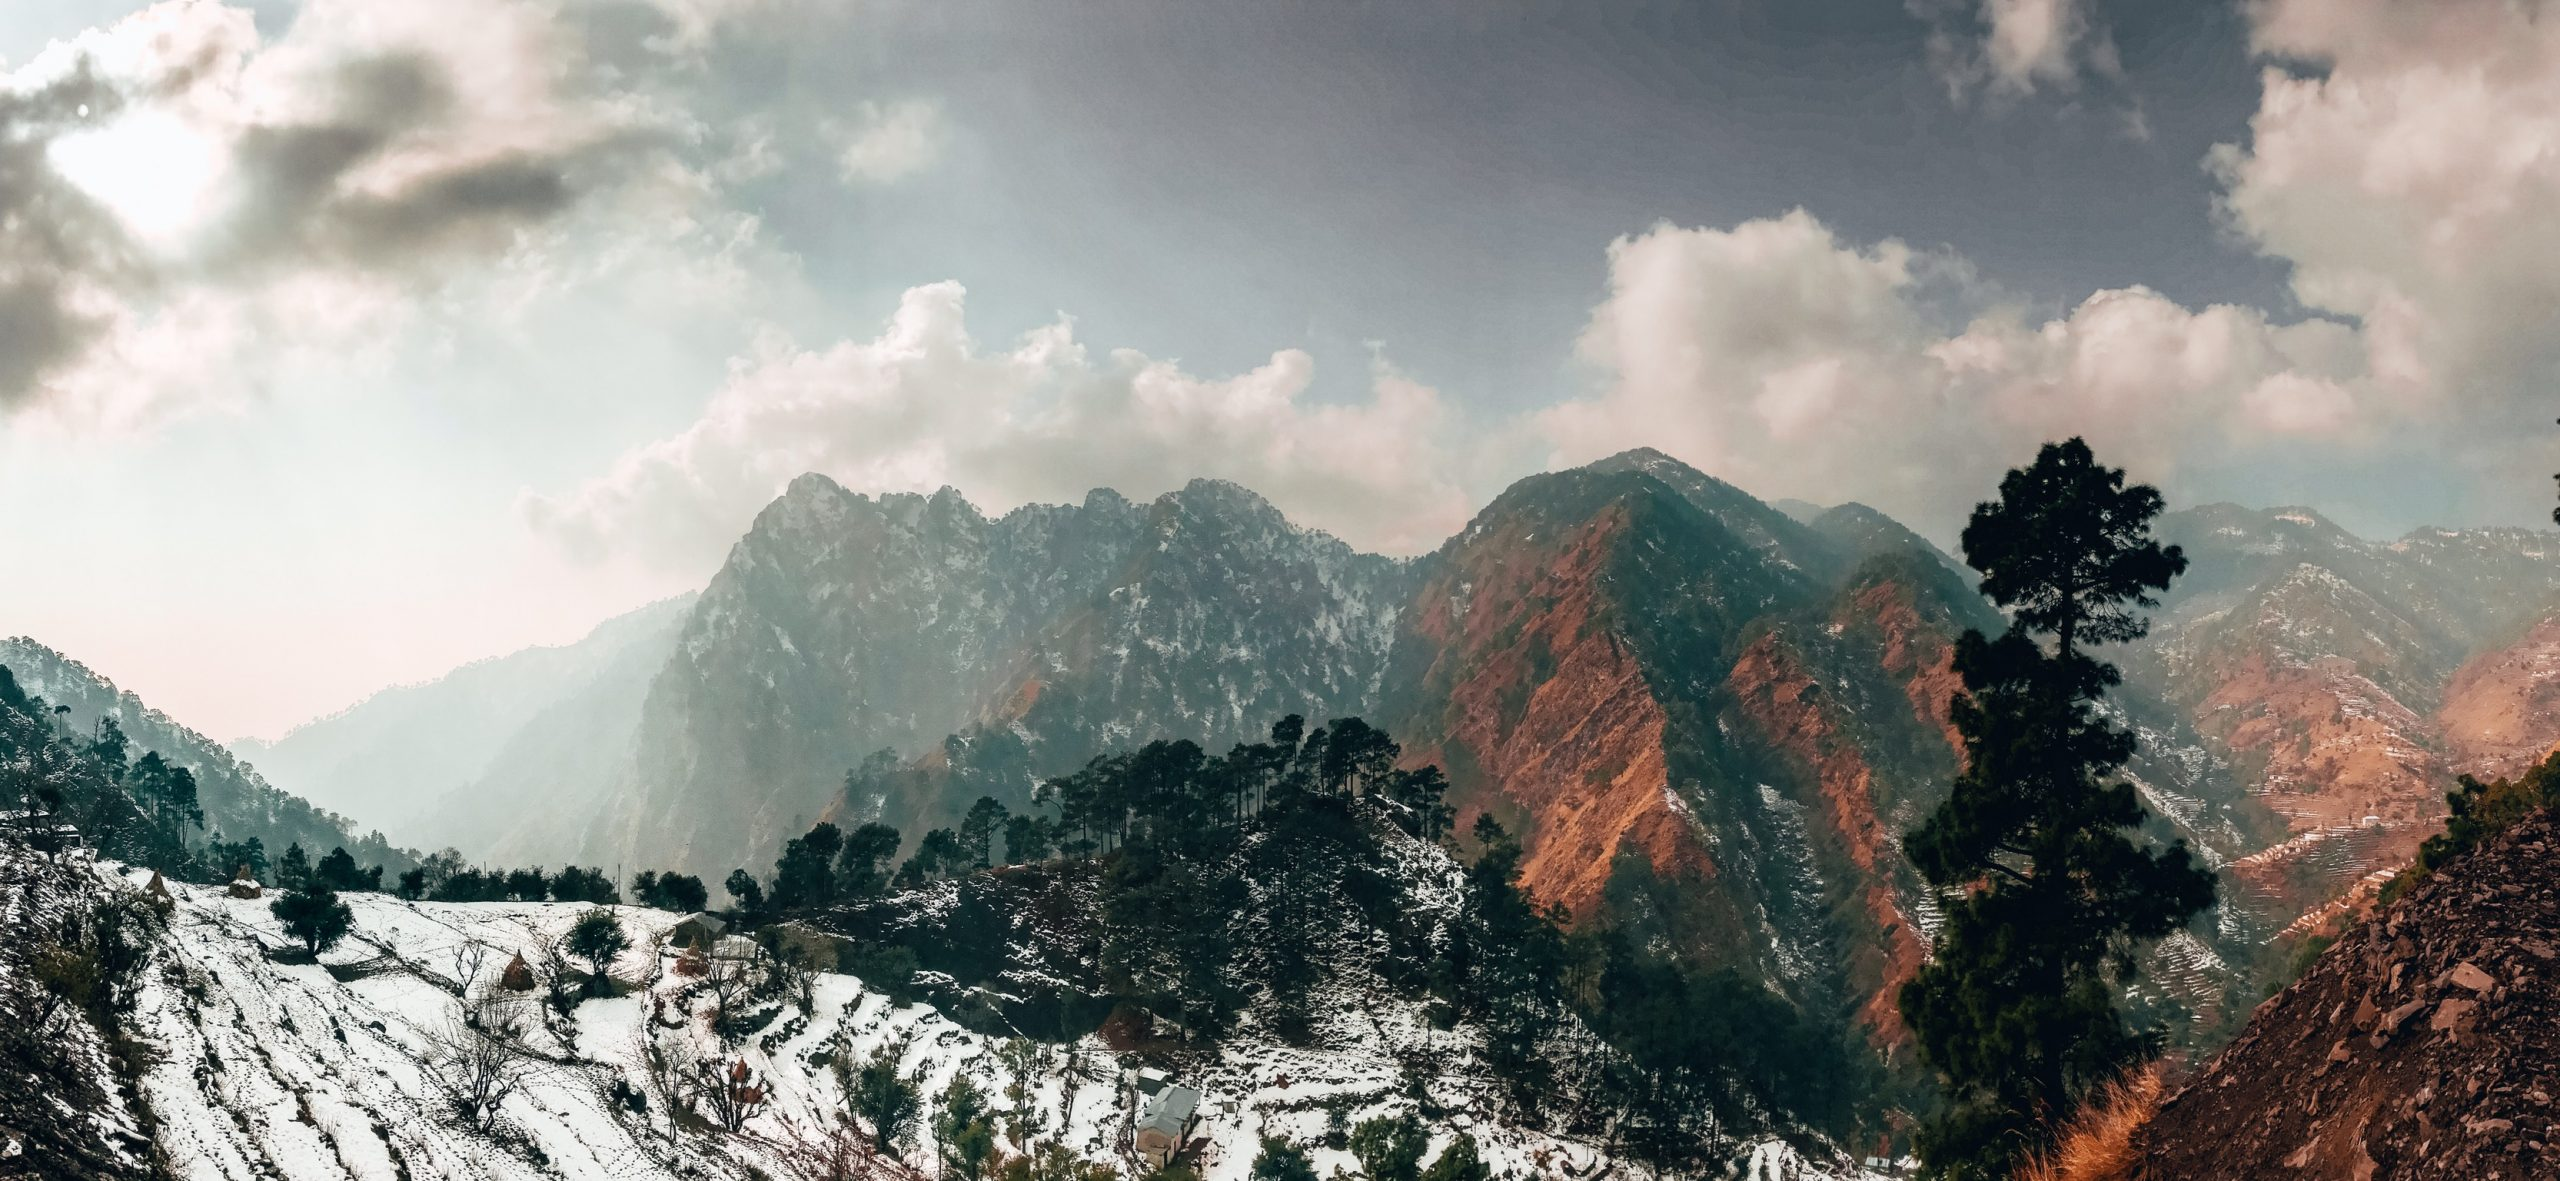 Scenery view of mountains